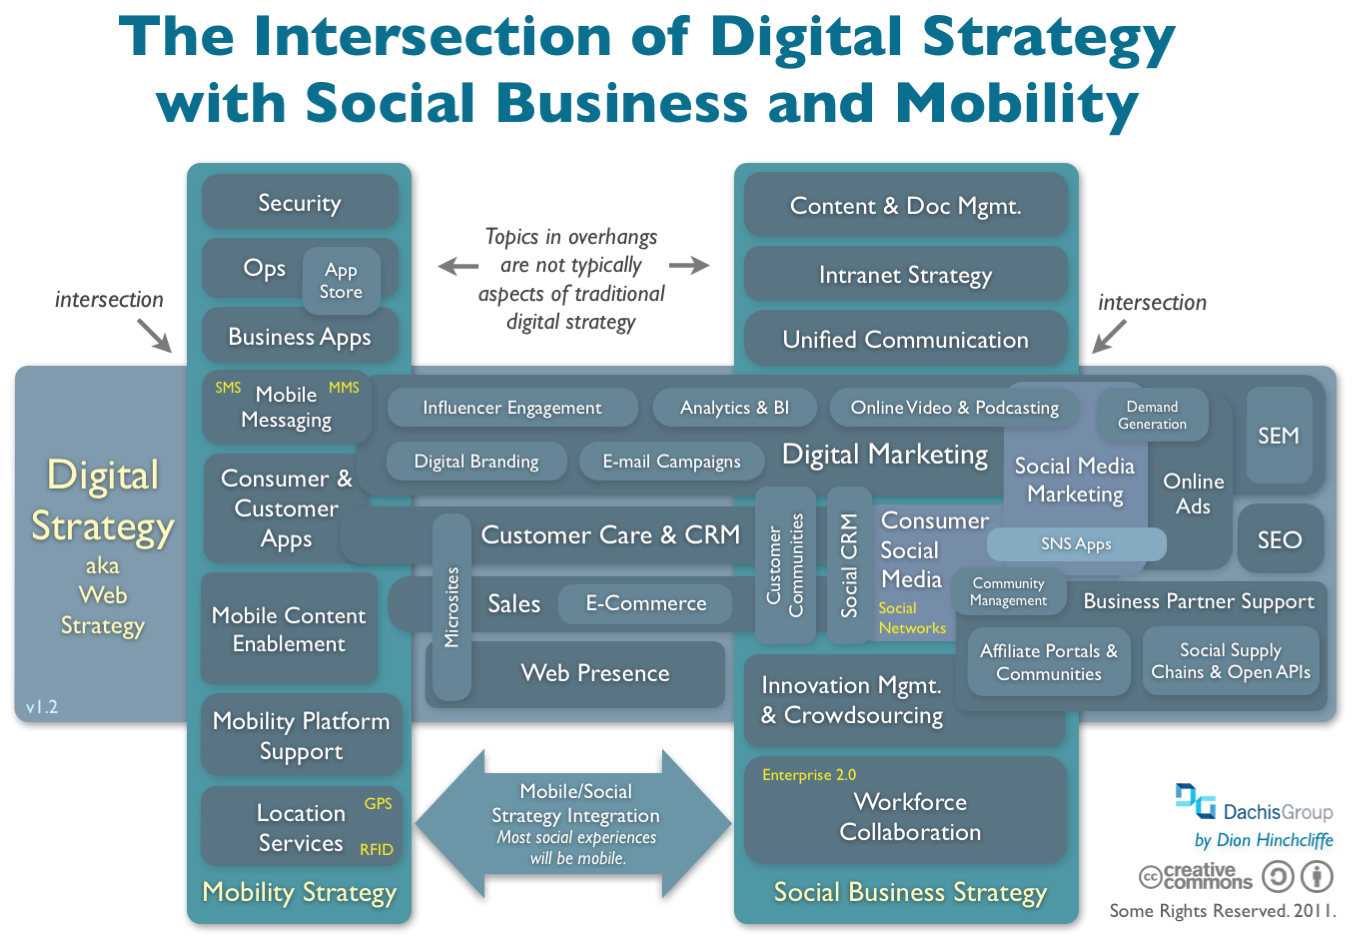 http://www.intelligenthq.com/wp-content/uploads/2013/04/intersection_of_digital_strategy_and_social_business_and_mobility_large.png